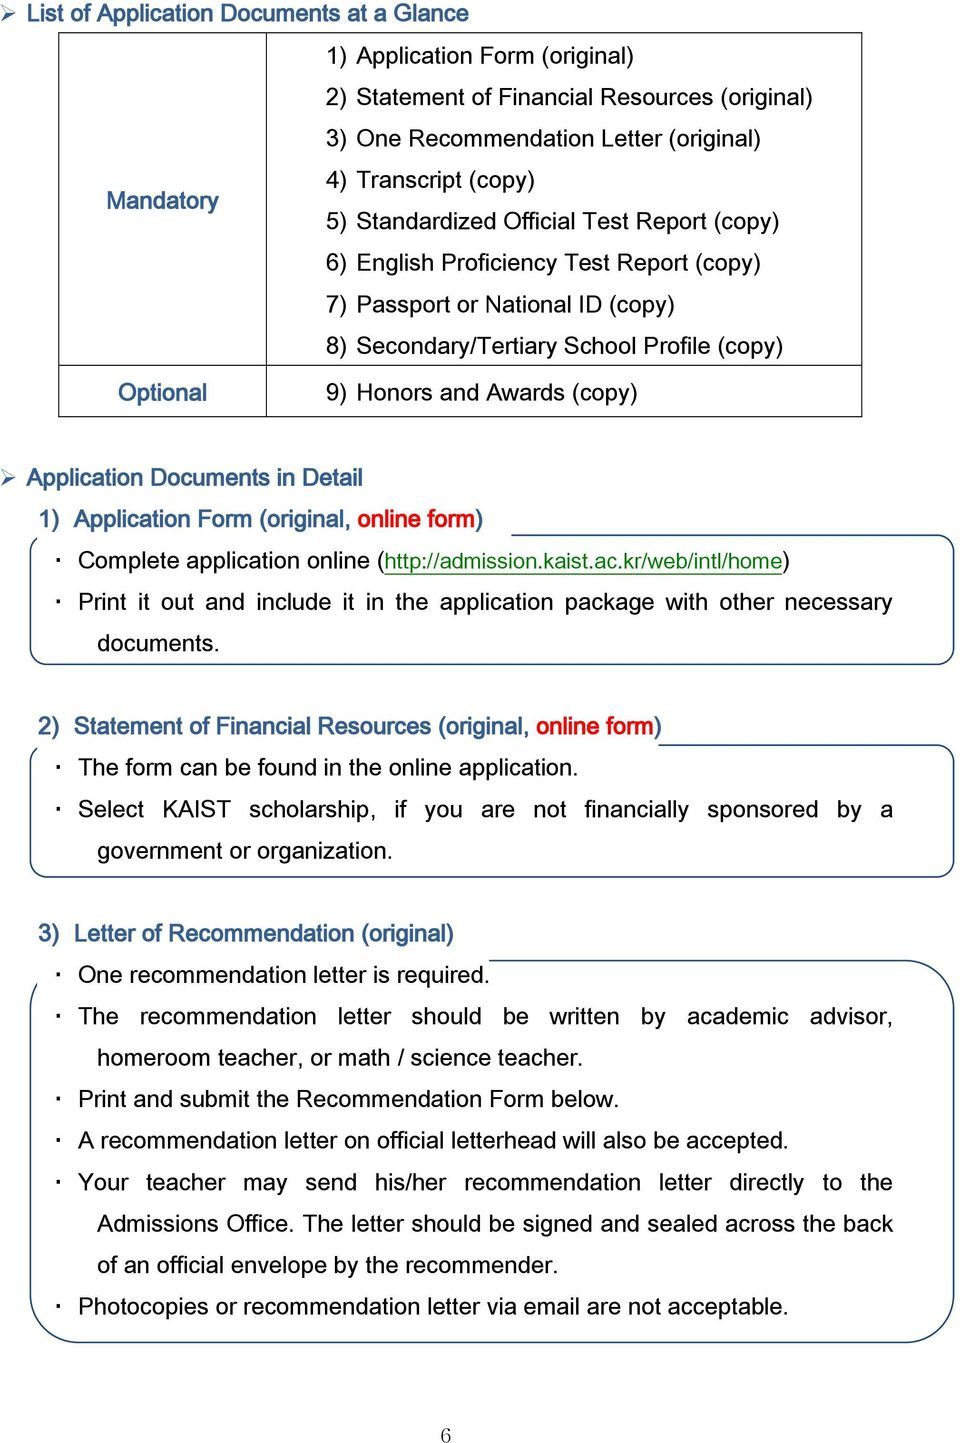 Application Documents in Detail 1) Application Form (original, online form) Complete application online (http://admission.kaist.ac.